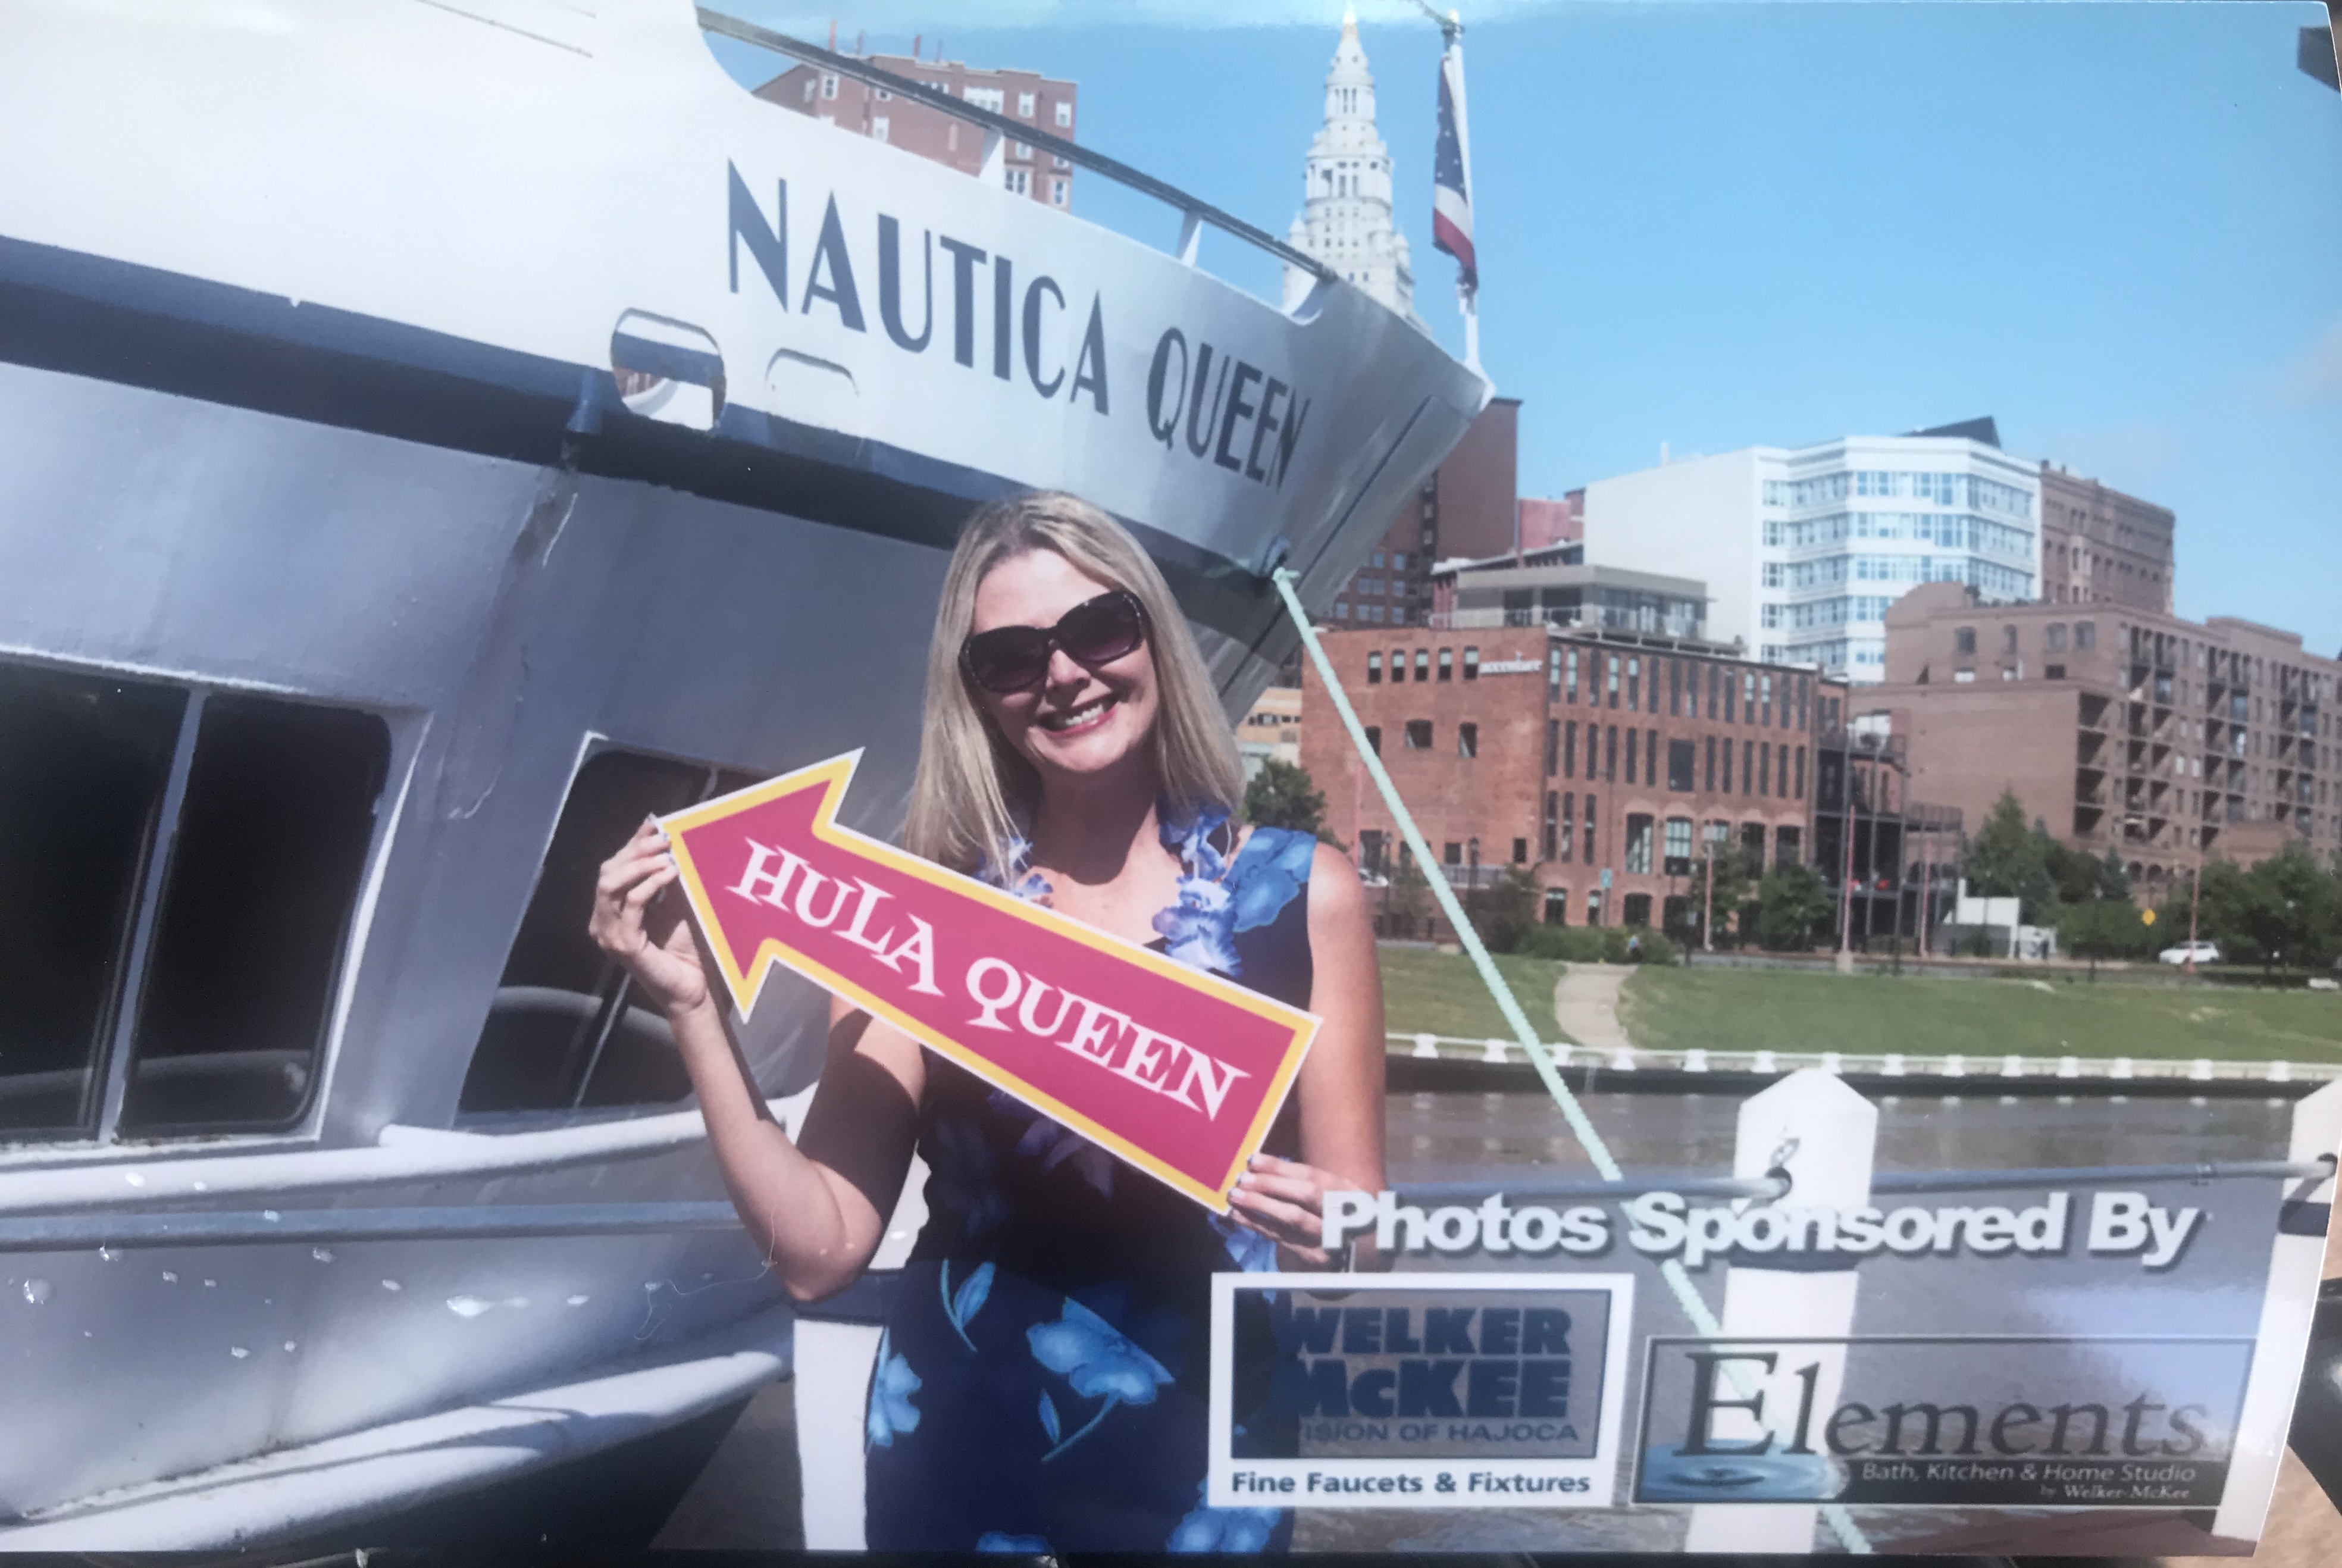 Thank you Amped Audio Video for the invite to the NARI/HBA Networking Night Aboard the Nautica Queen.  We a great night meeting industry professionals.